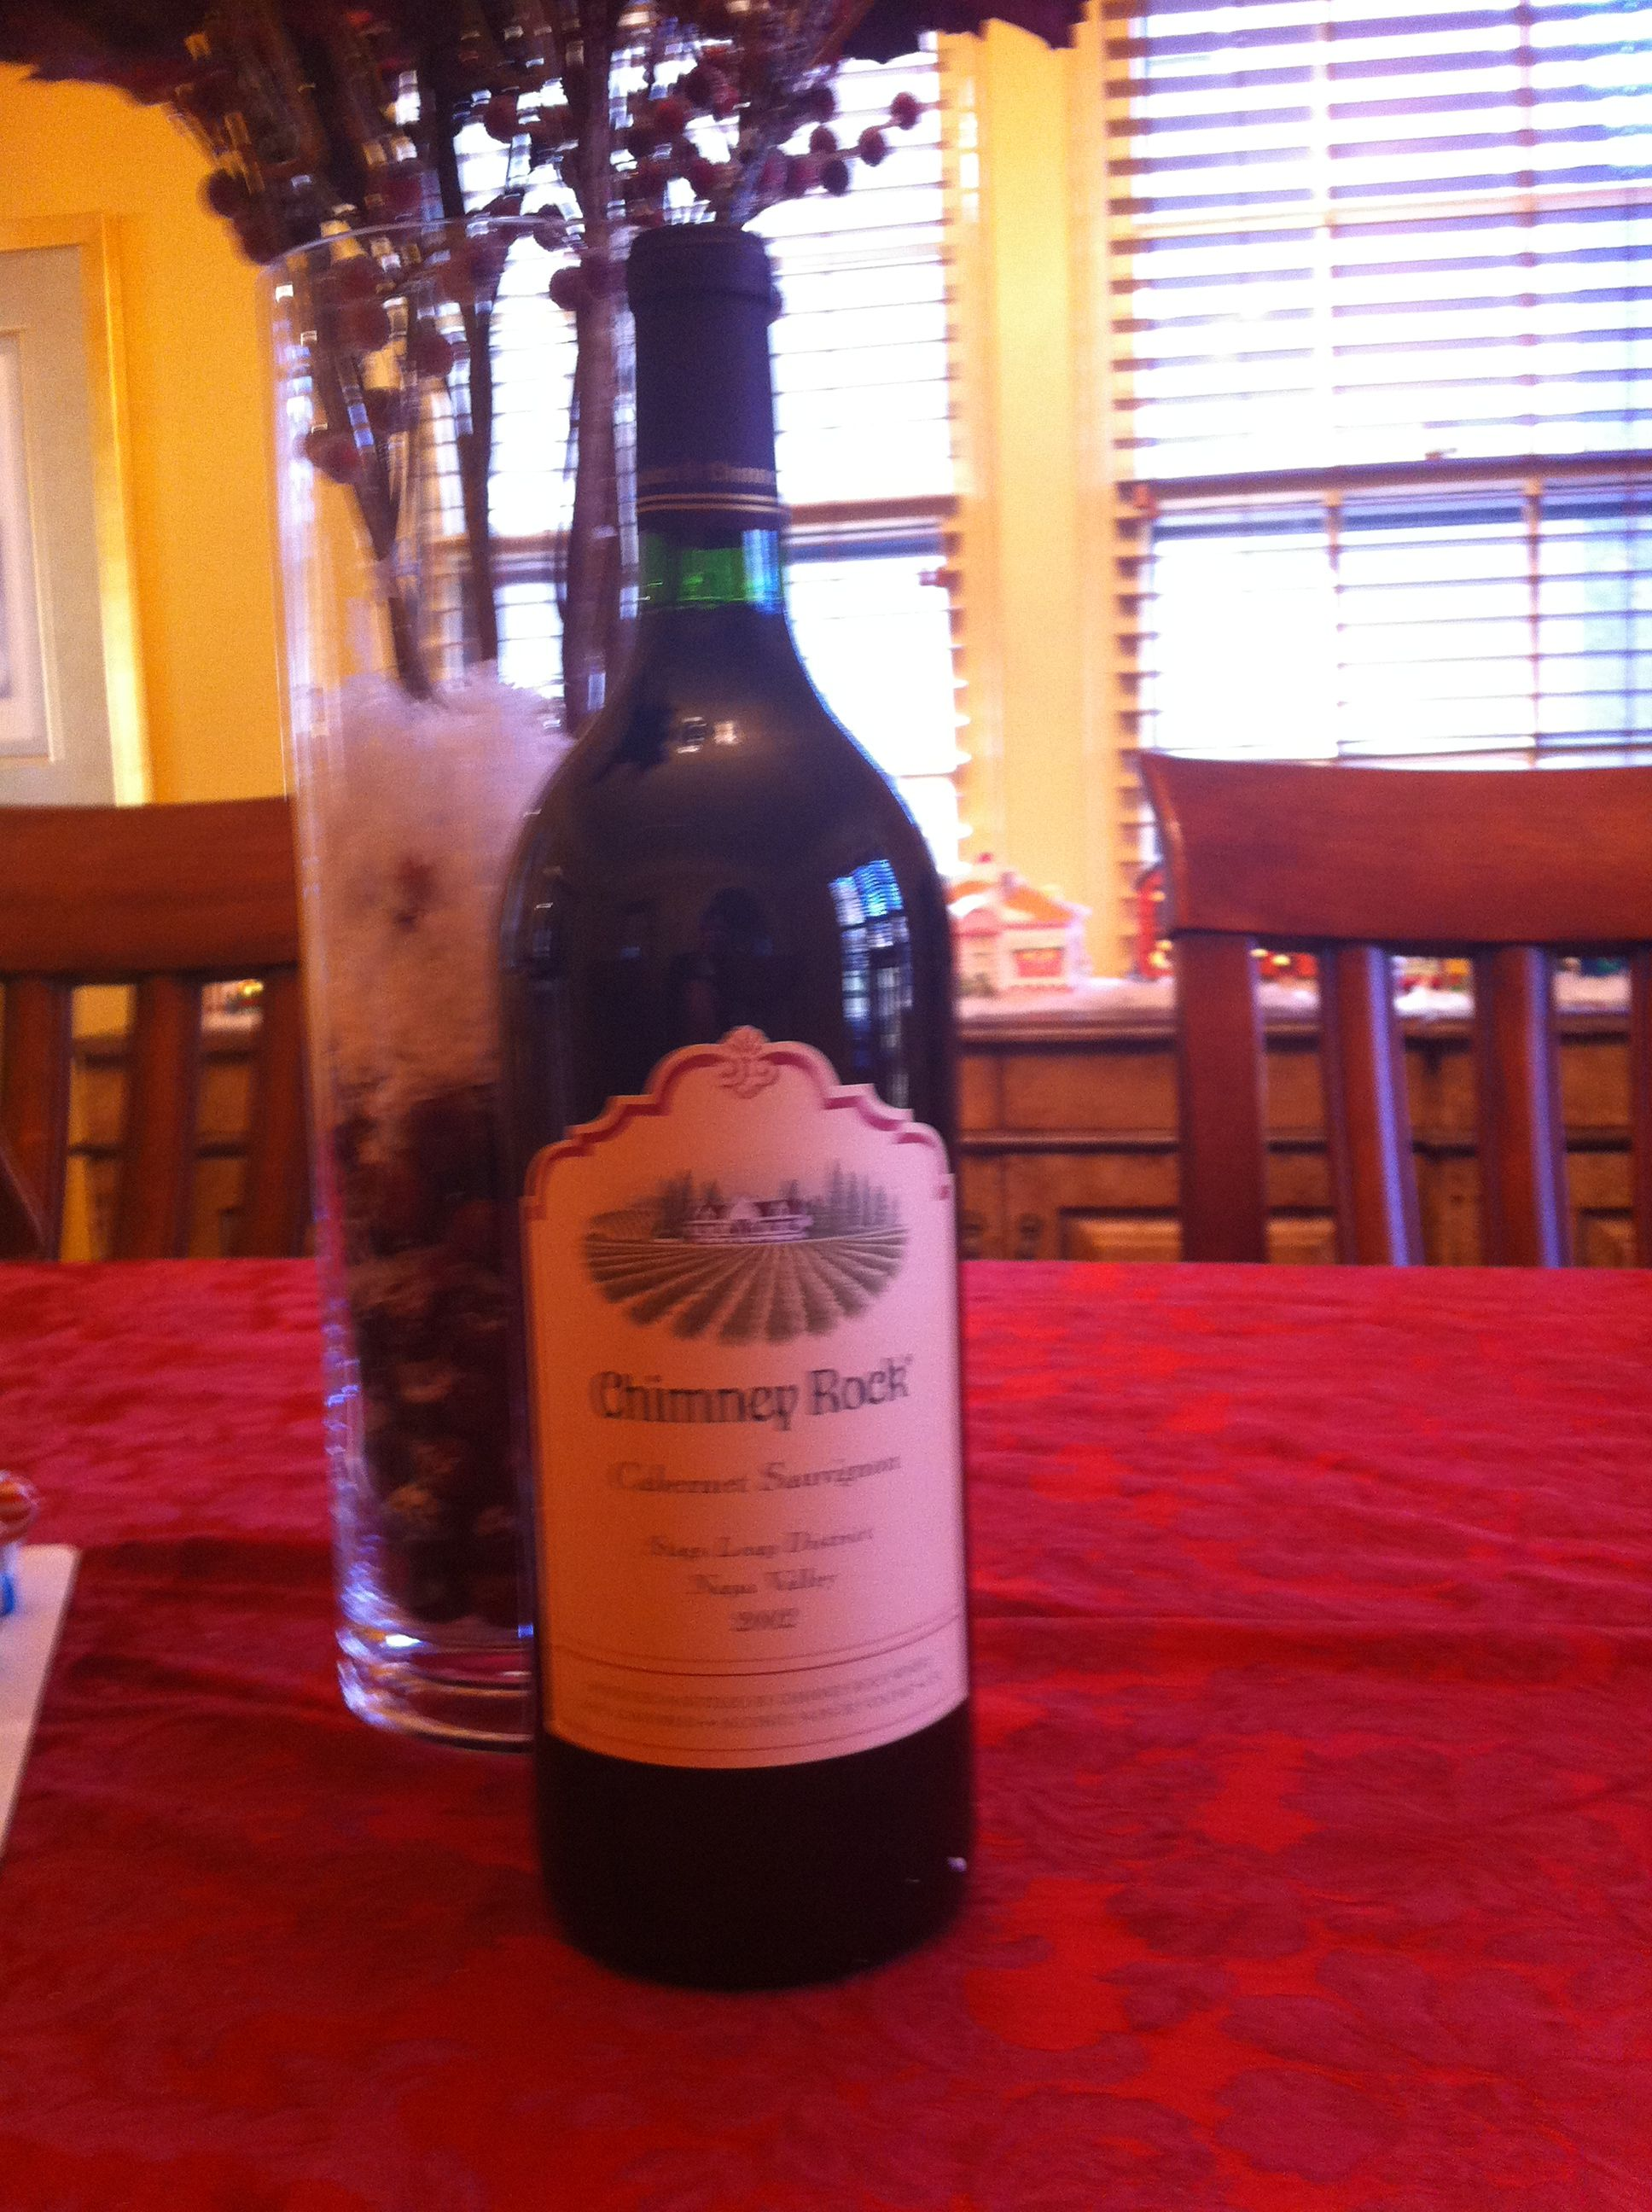 Pin By Jackie Knopke On Napa Valley Holiday Napa Valley Holiday Wine Bottle Holiday